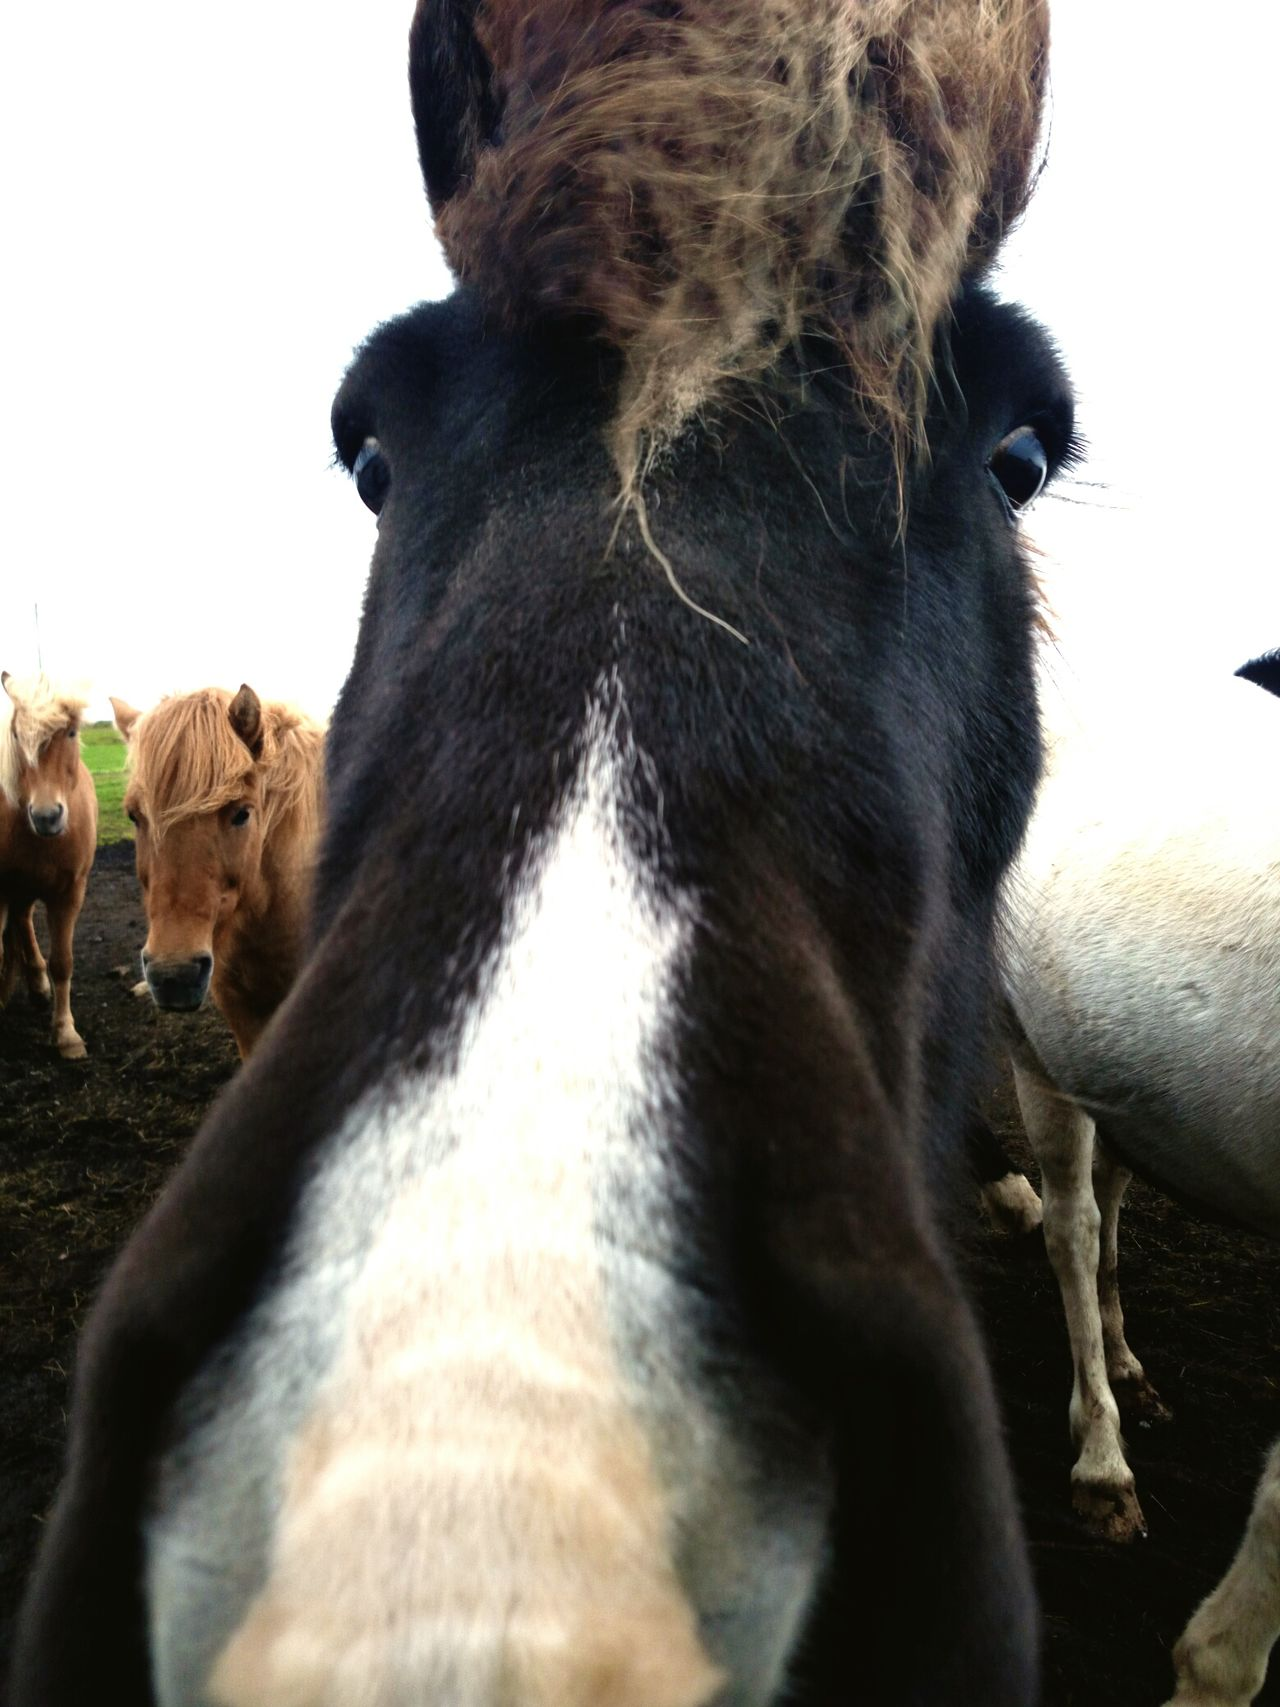 Horse Animal Themes Domestic Animals Outdoors Sky No People Islande Selfie ✌ Like Icelandtrip Iceland_collection EyeEmNewHere Selfportrait Selfies Beautiful Spirituality Tranquility Grass